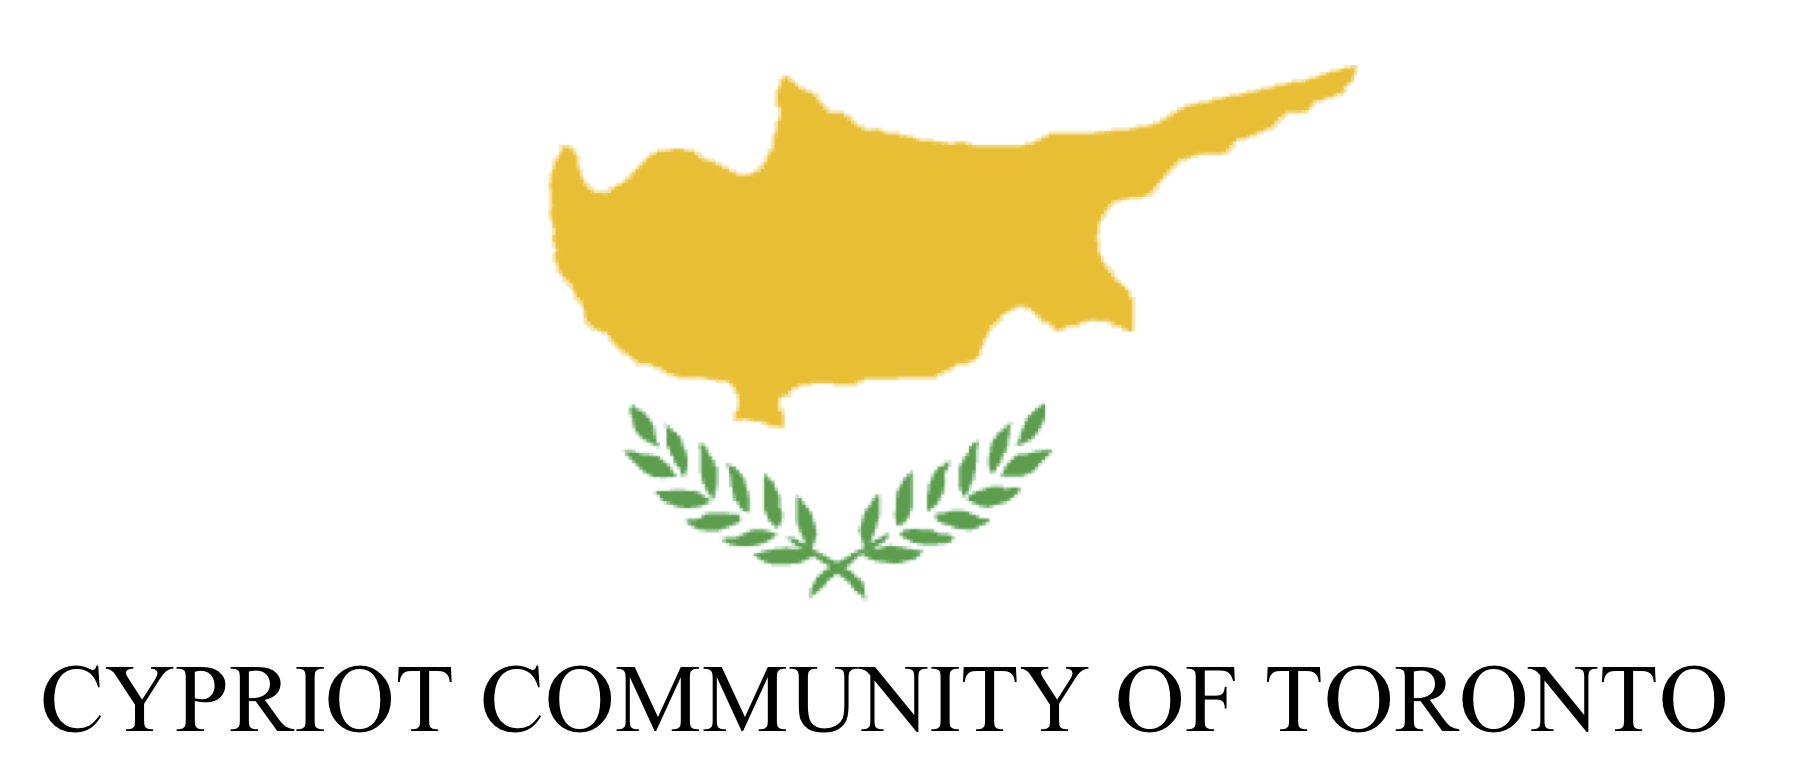 Cypriot Community in Toronto